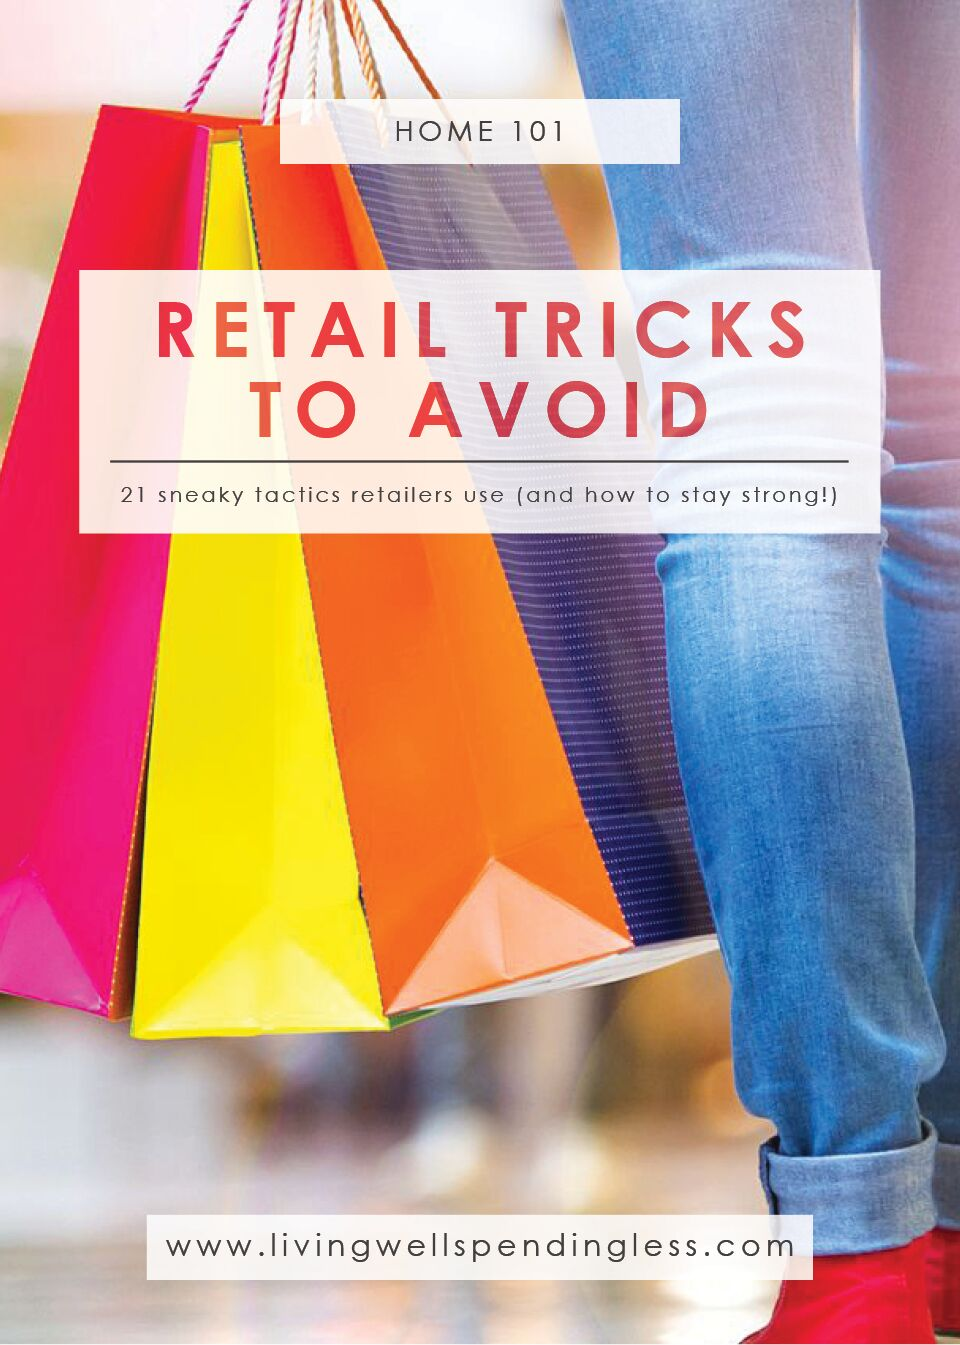 Retail Tricks (and How to Resist Them) | Budgeting | Home Decluttering | Home 101